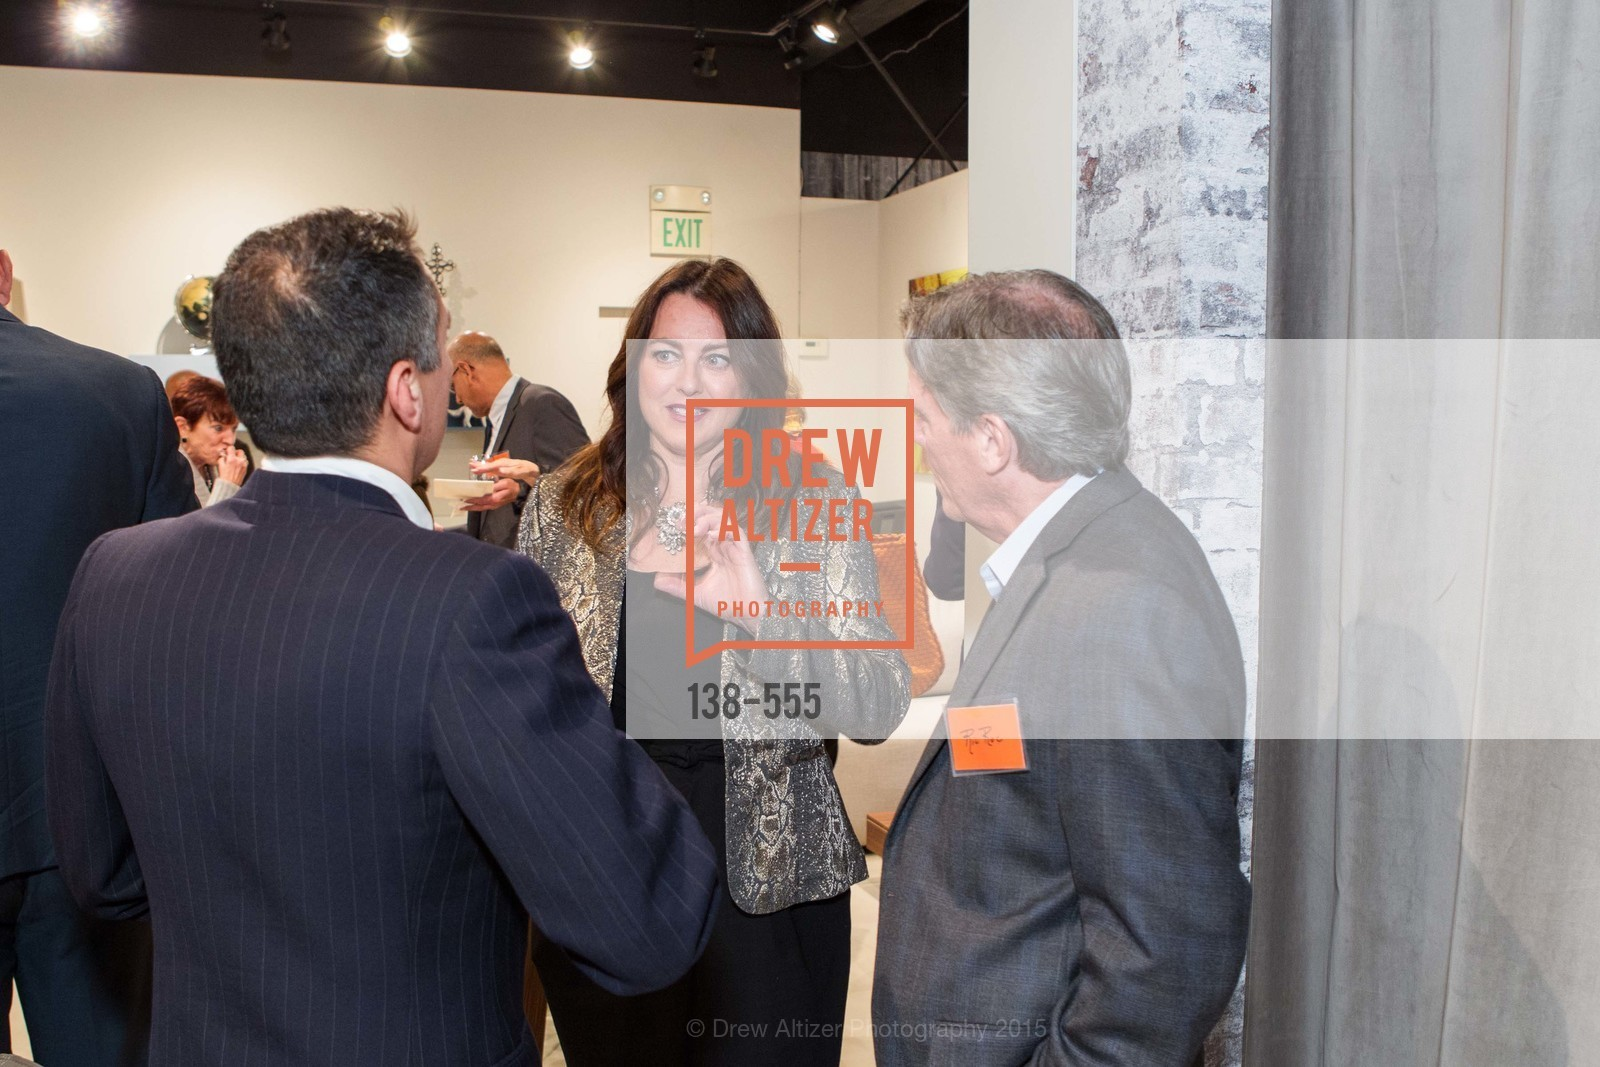 Paul Ybarbo, Amelia Hyde, Rick Rocchiccioli, SFC&G Real Estate Survey Reveal, Resource Furniture, November 19th, 2015,Drew Altizer, Drew Altizer Photography, full-service agency, private events, San Francisco photographer, photographer california